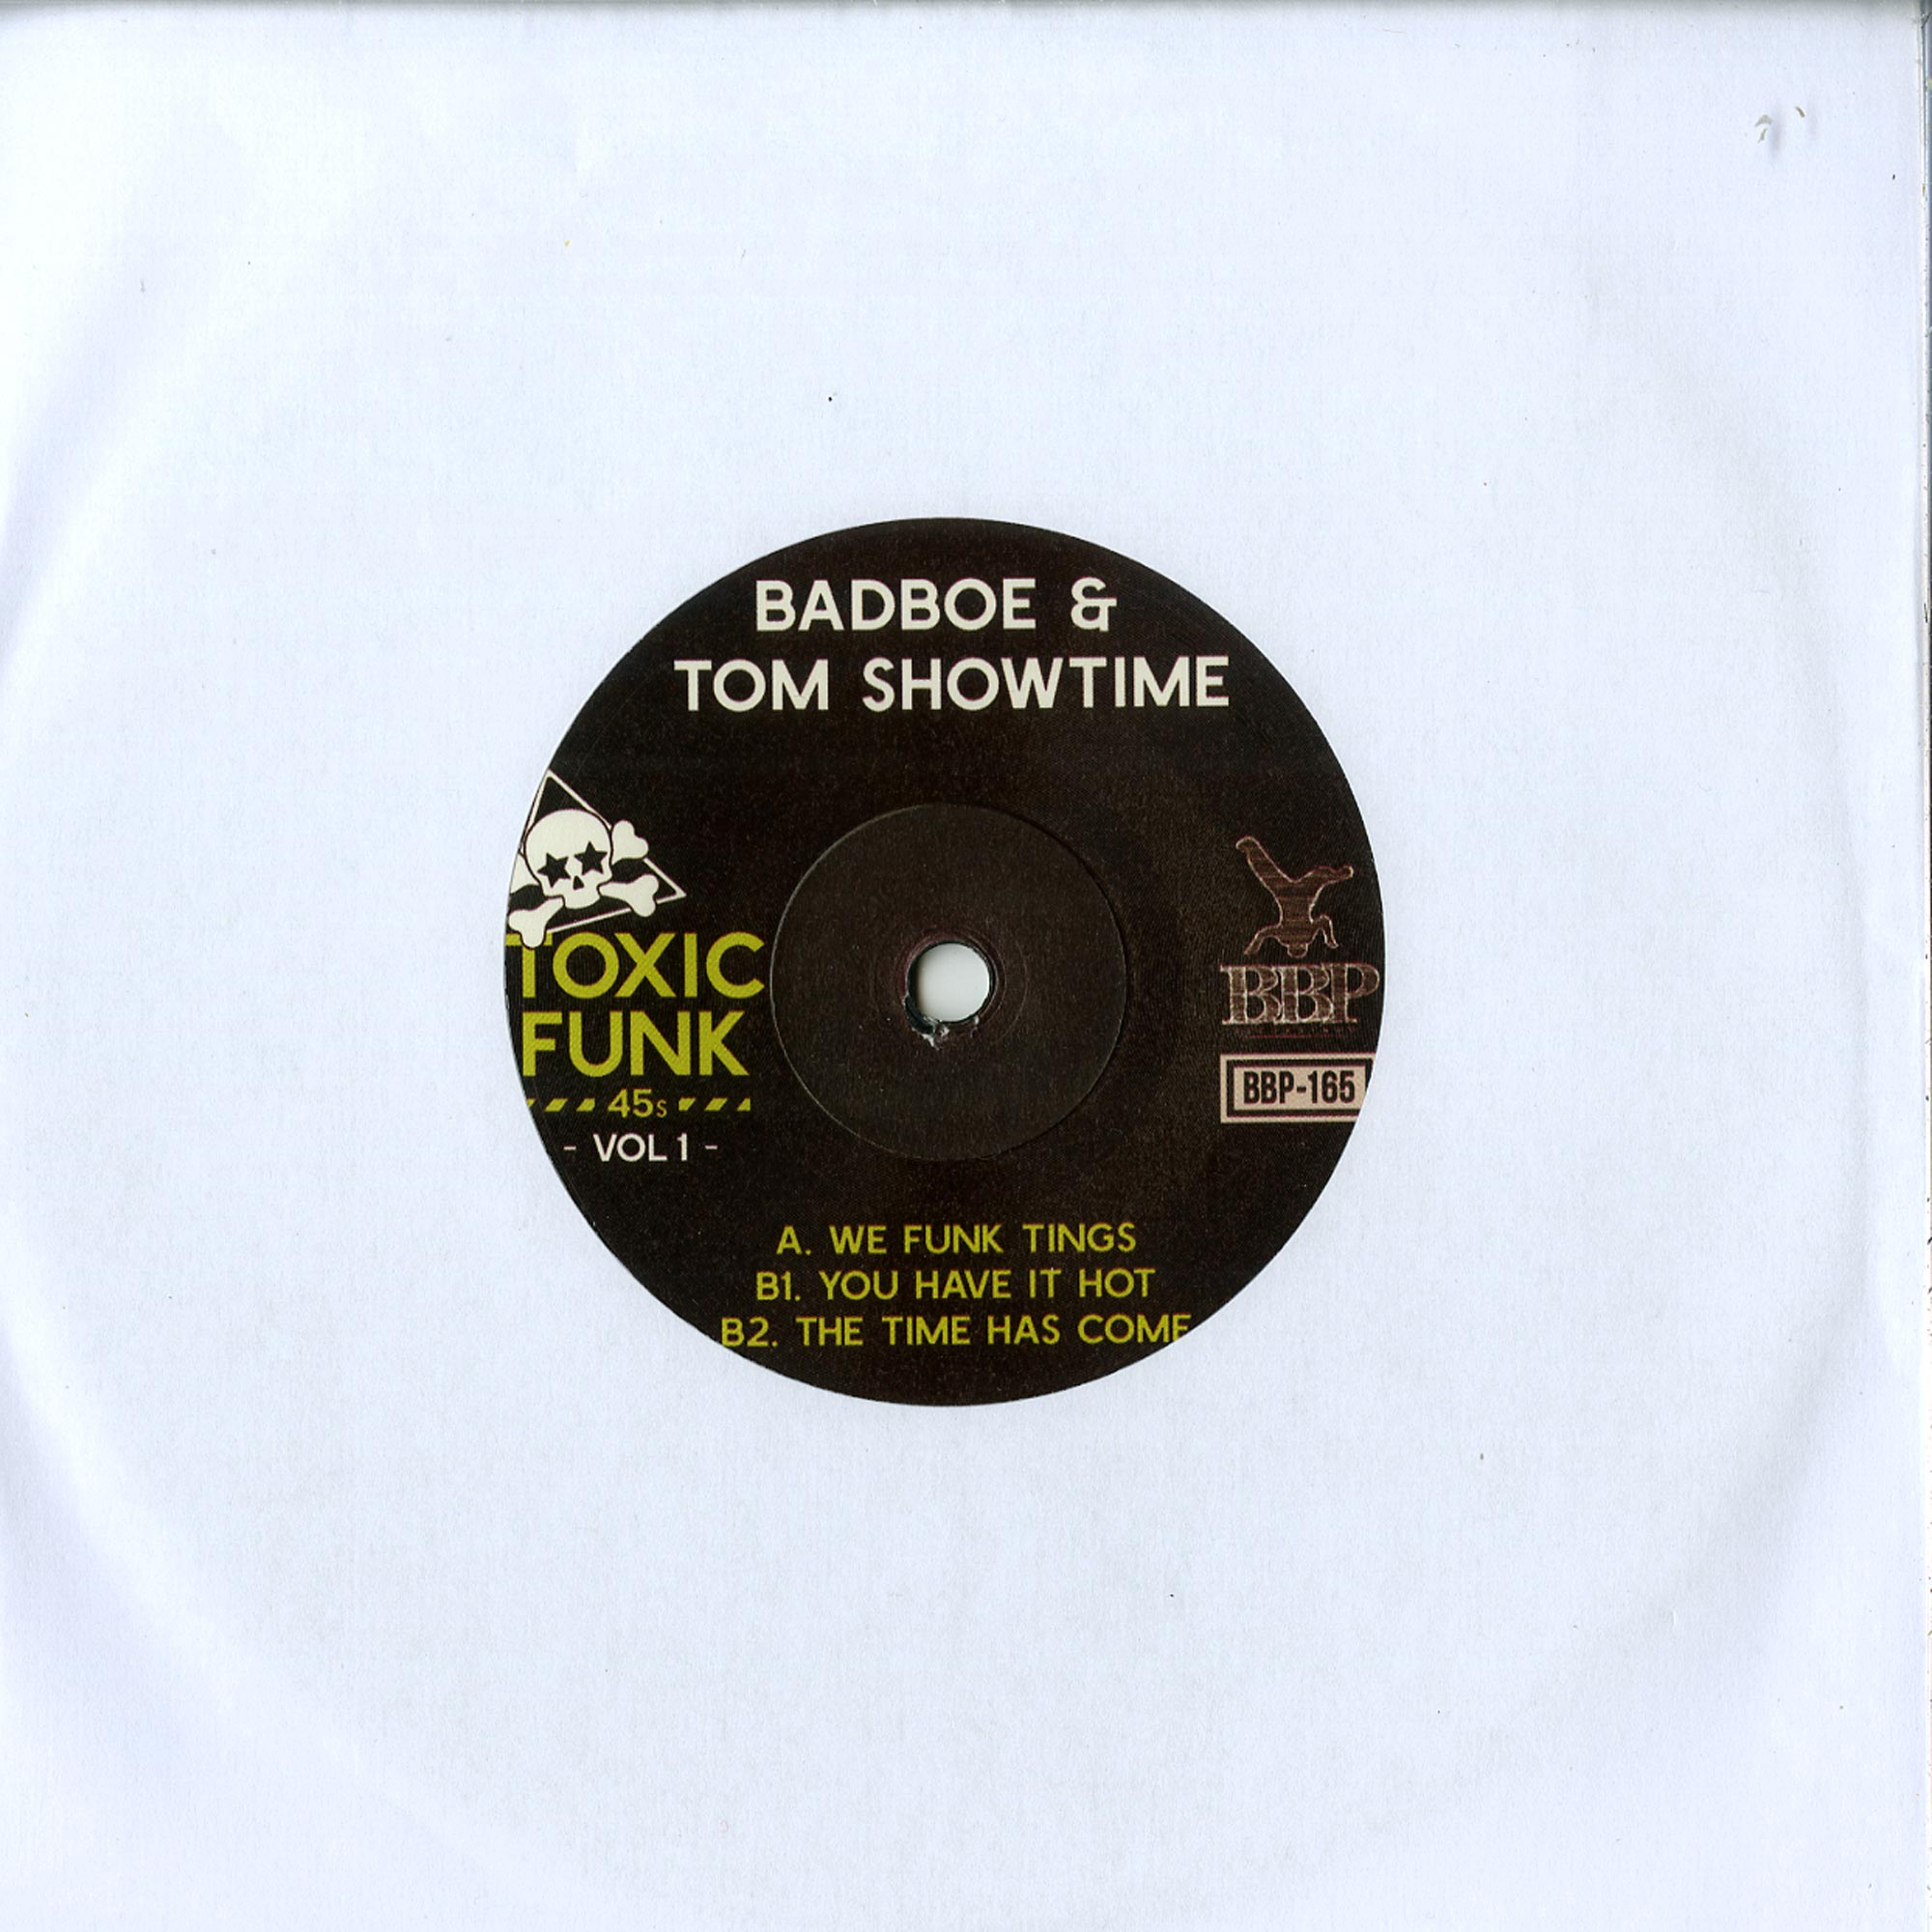 Badboe & Tom Showtime - TOXIC FUNK VOL.1